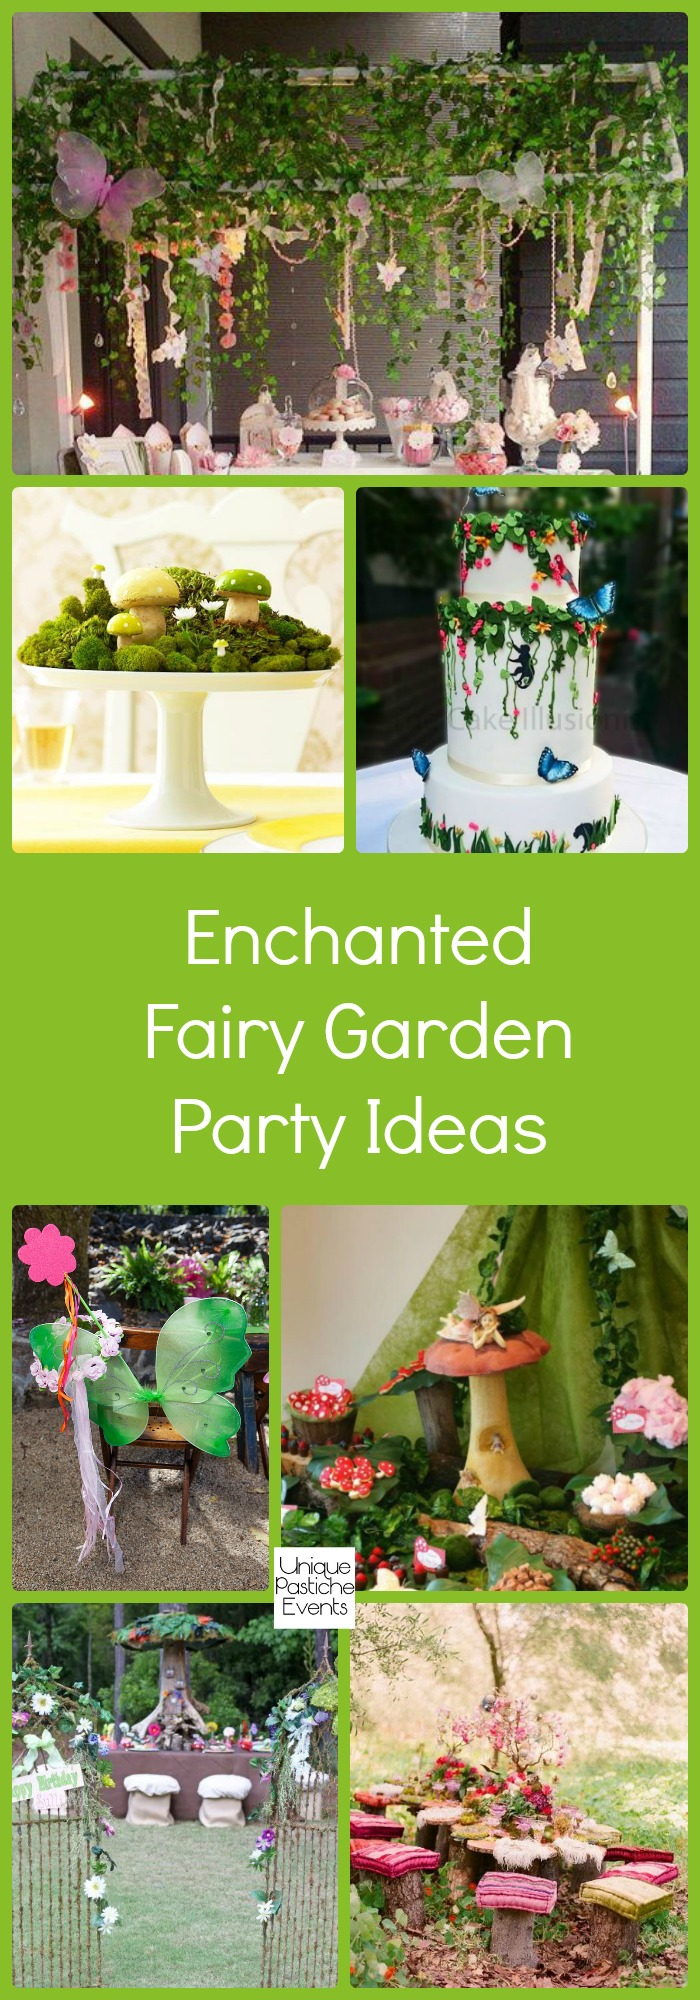 Enchanted Fairy Garden Party Ideas